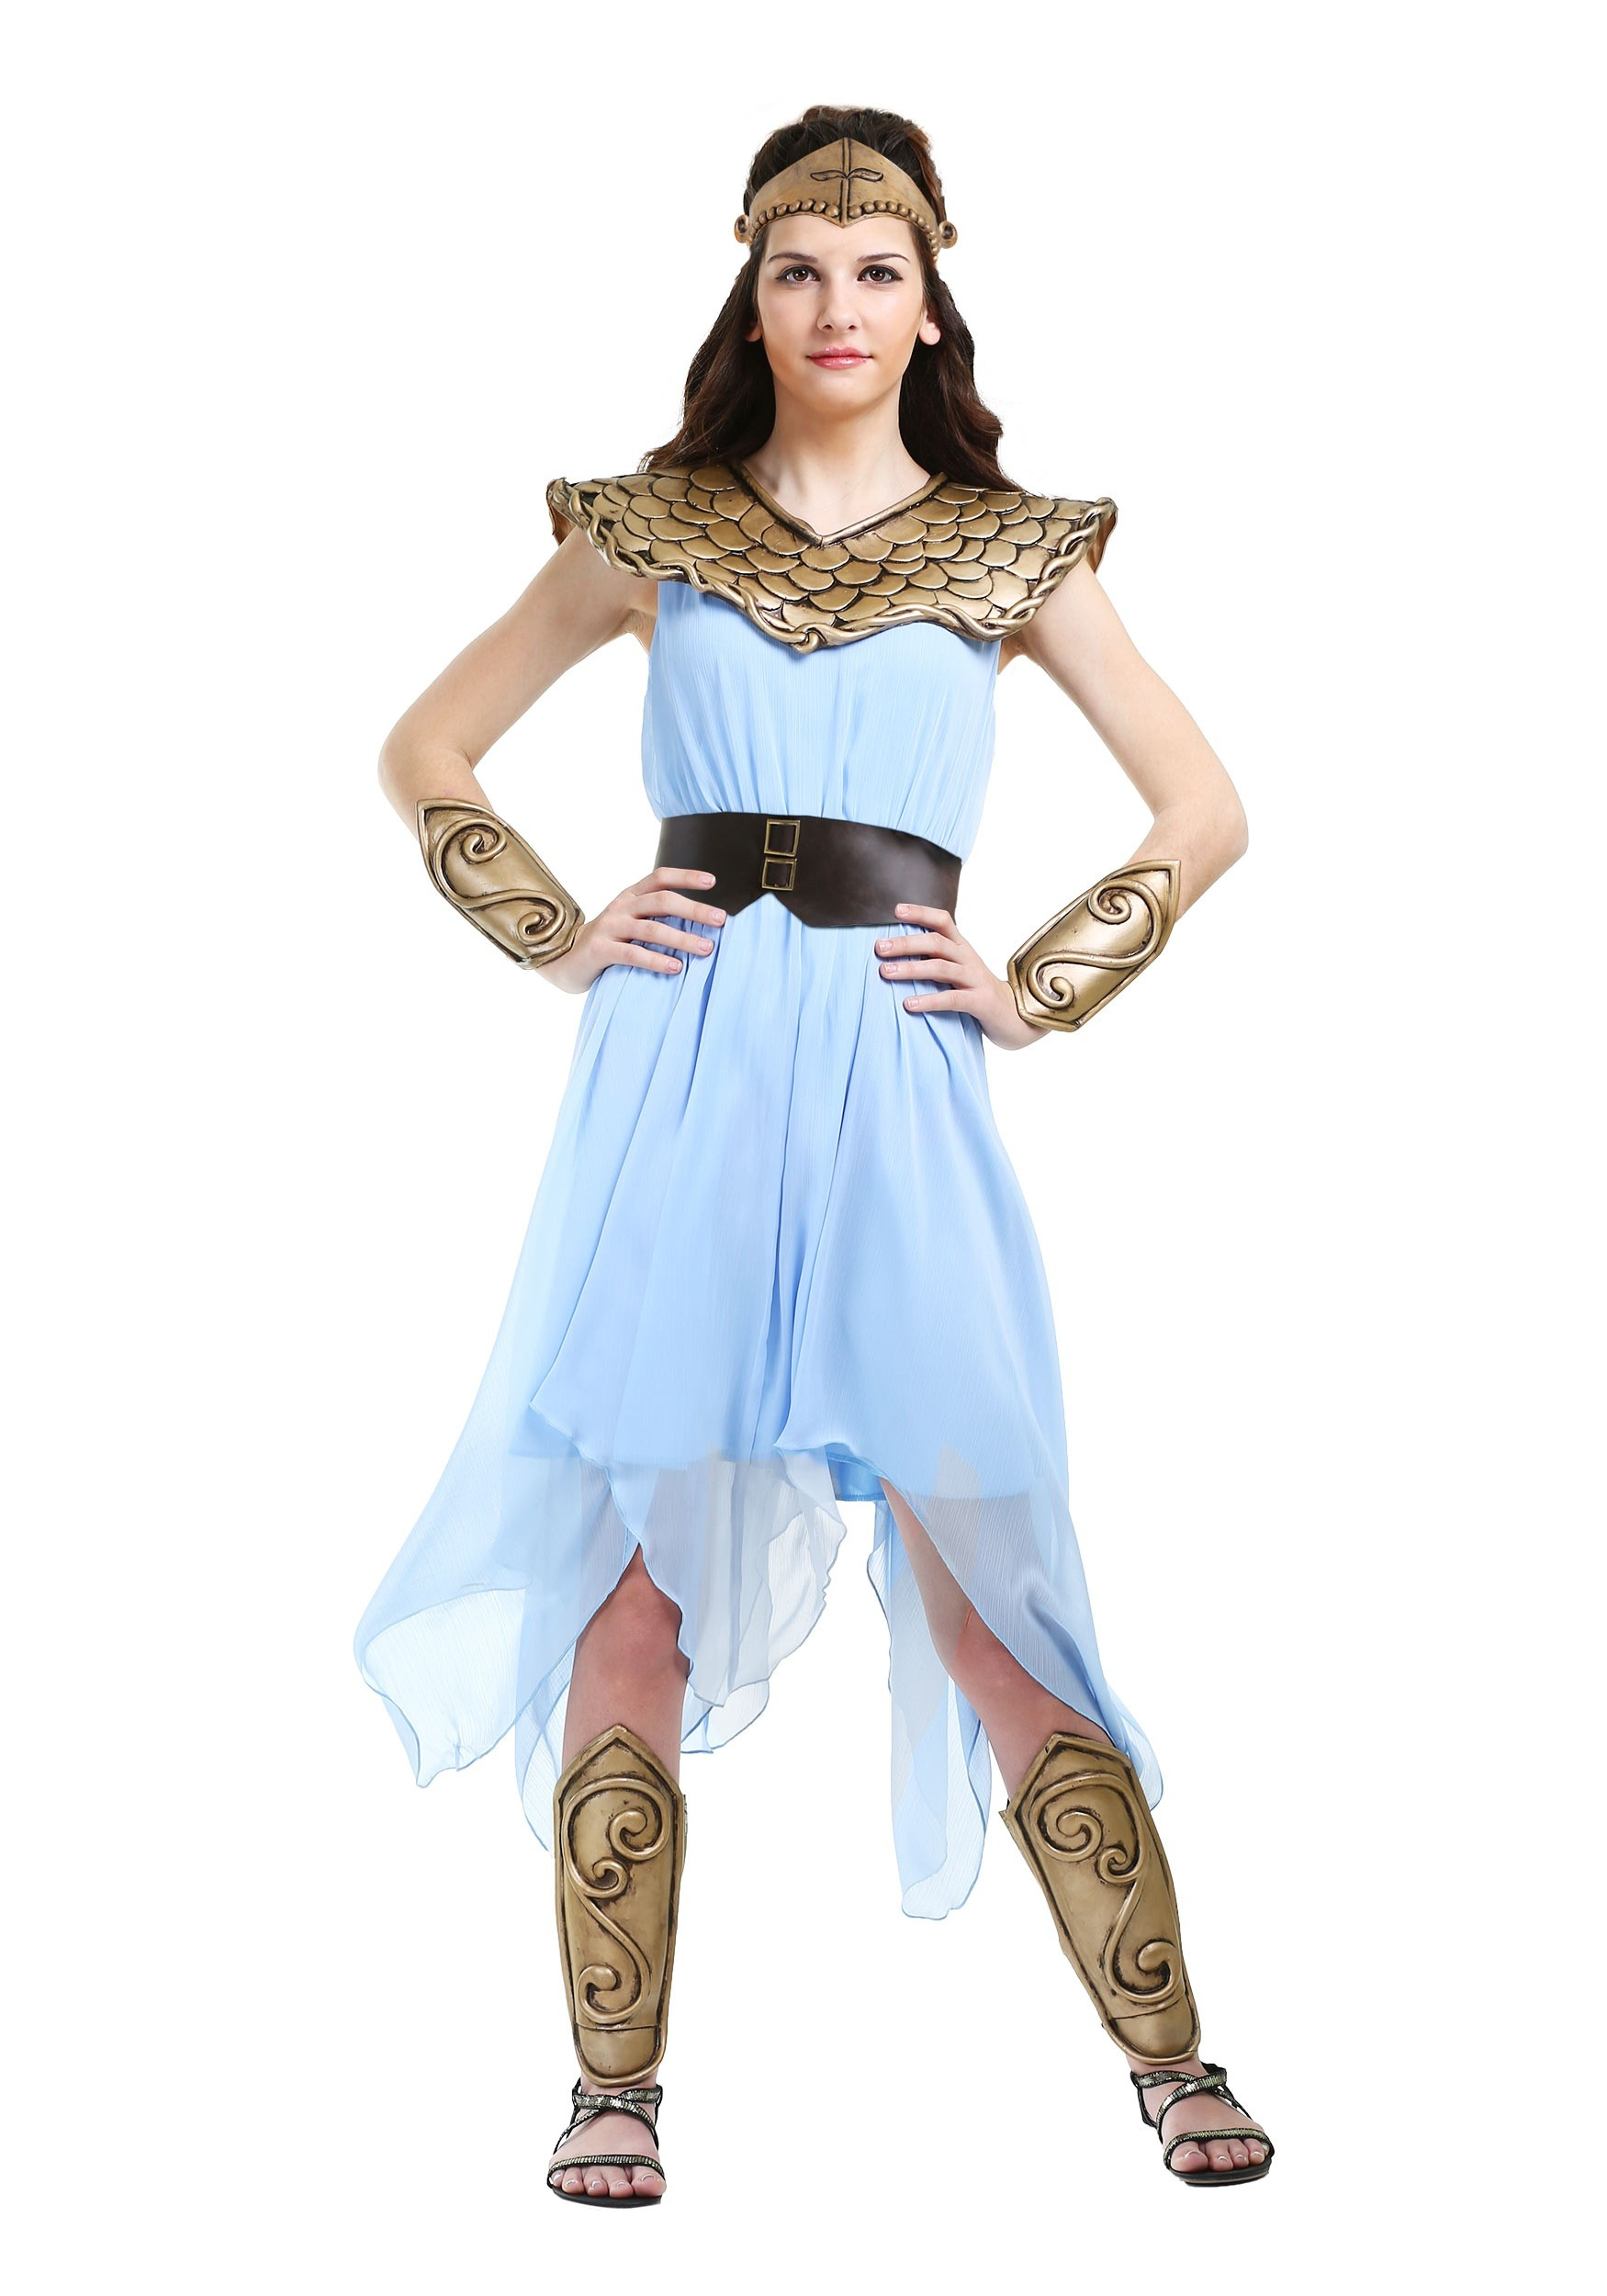 Athena Costume for Women 7fa5e6c10c1f